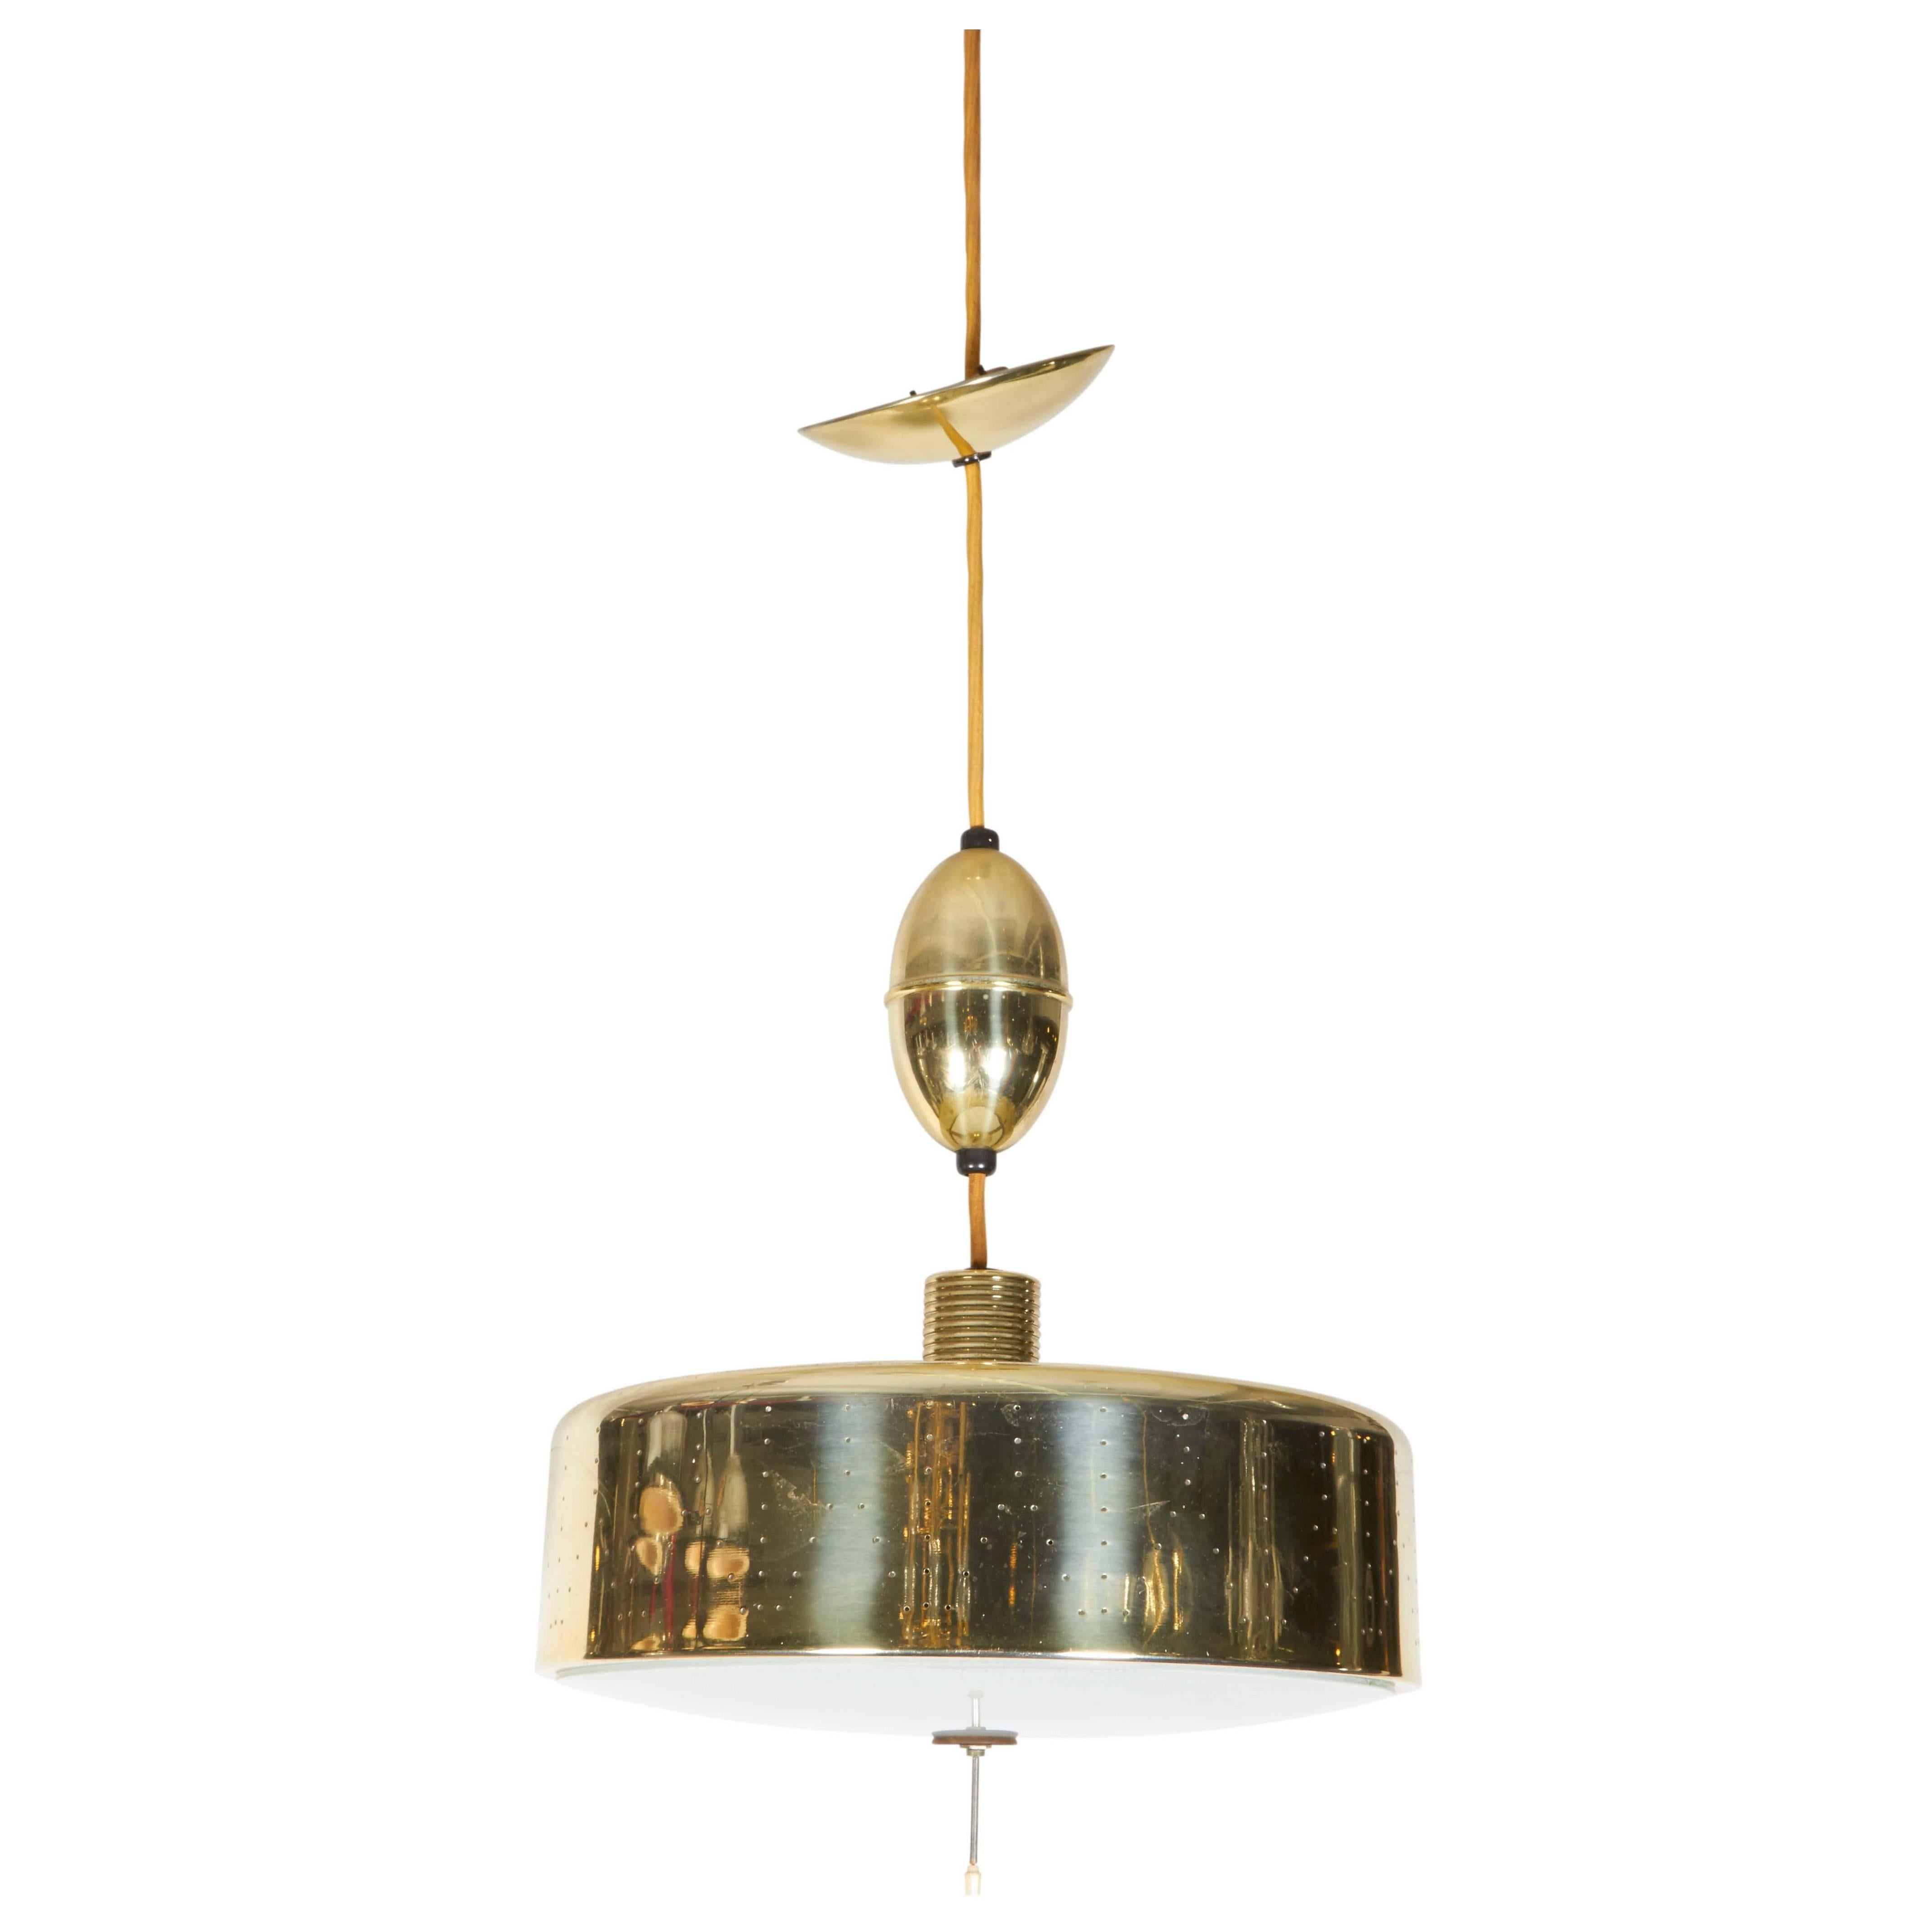 Adjustable Drum Pendant Light in Perforated Brass